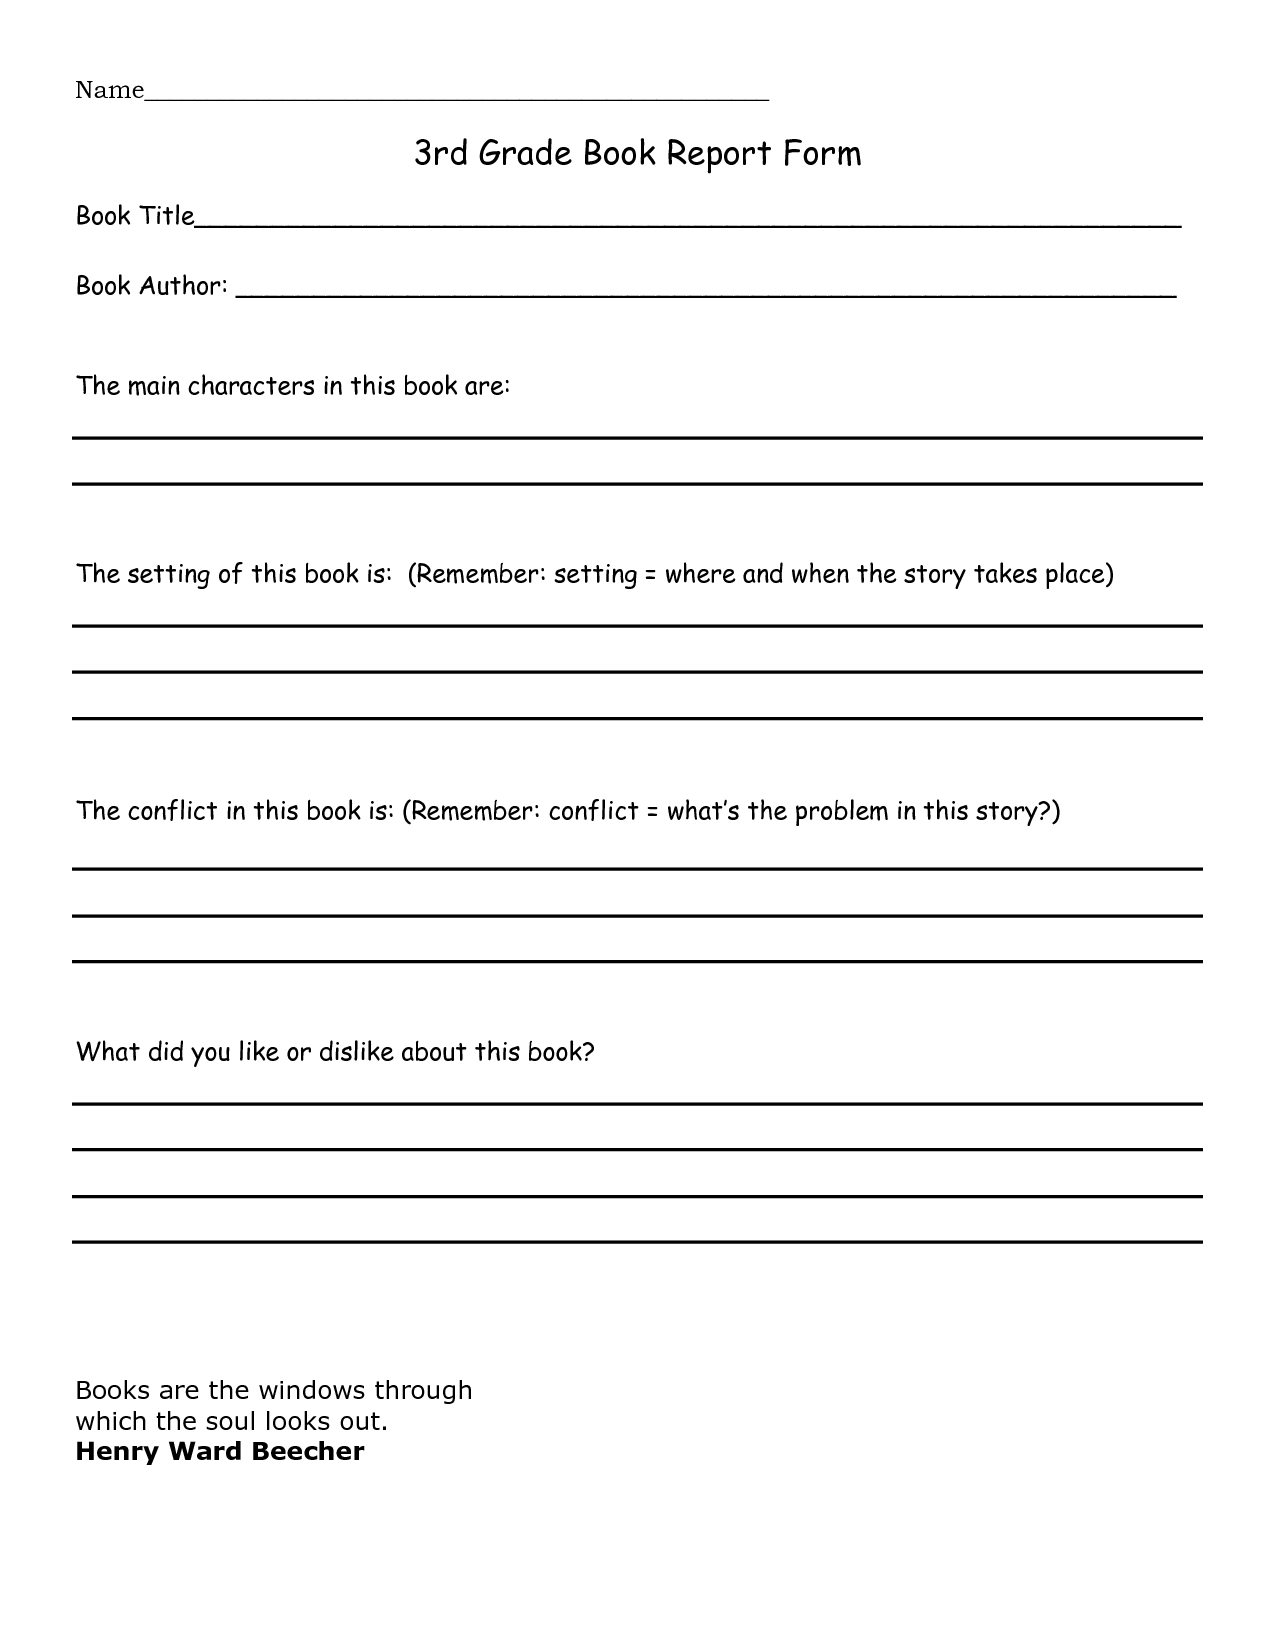 Image Result For Grade 3 Writing Rubric Book Summary